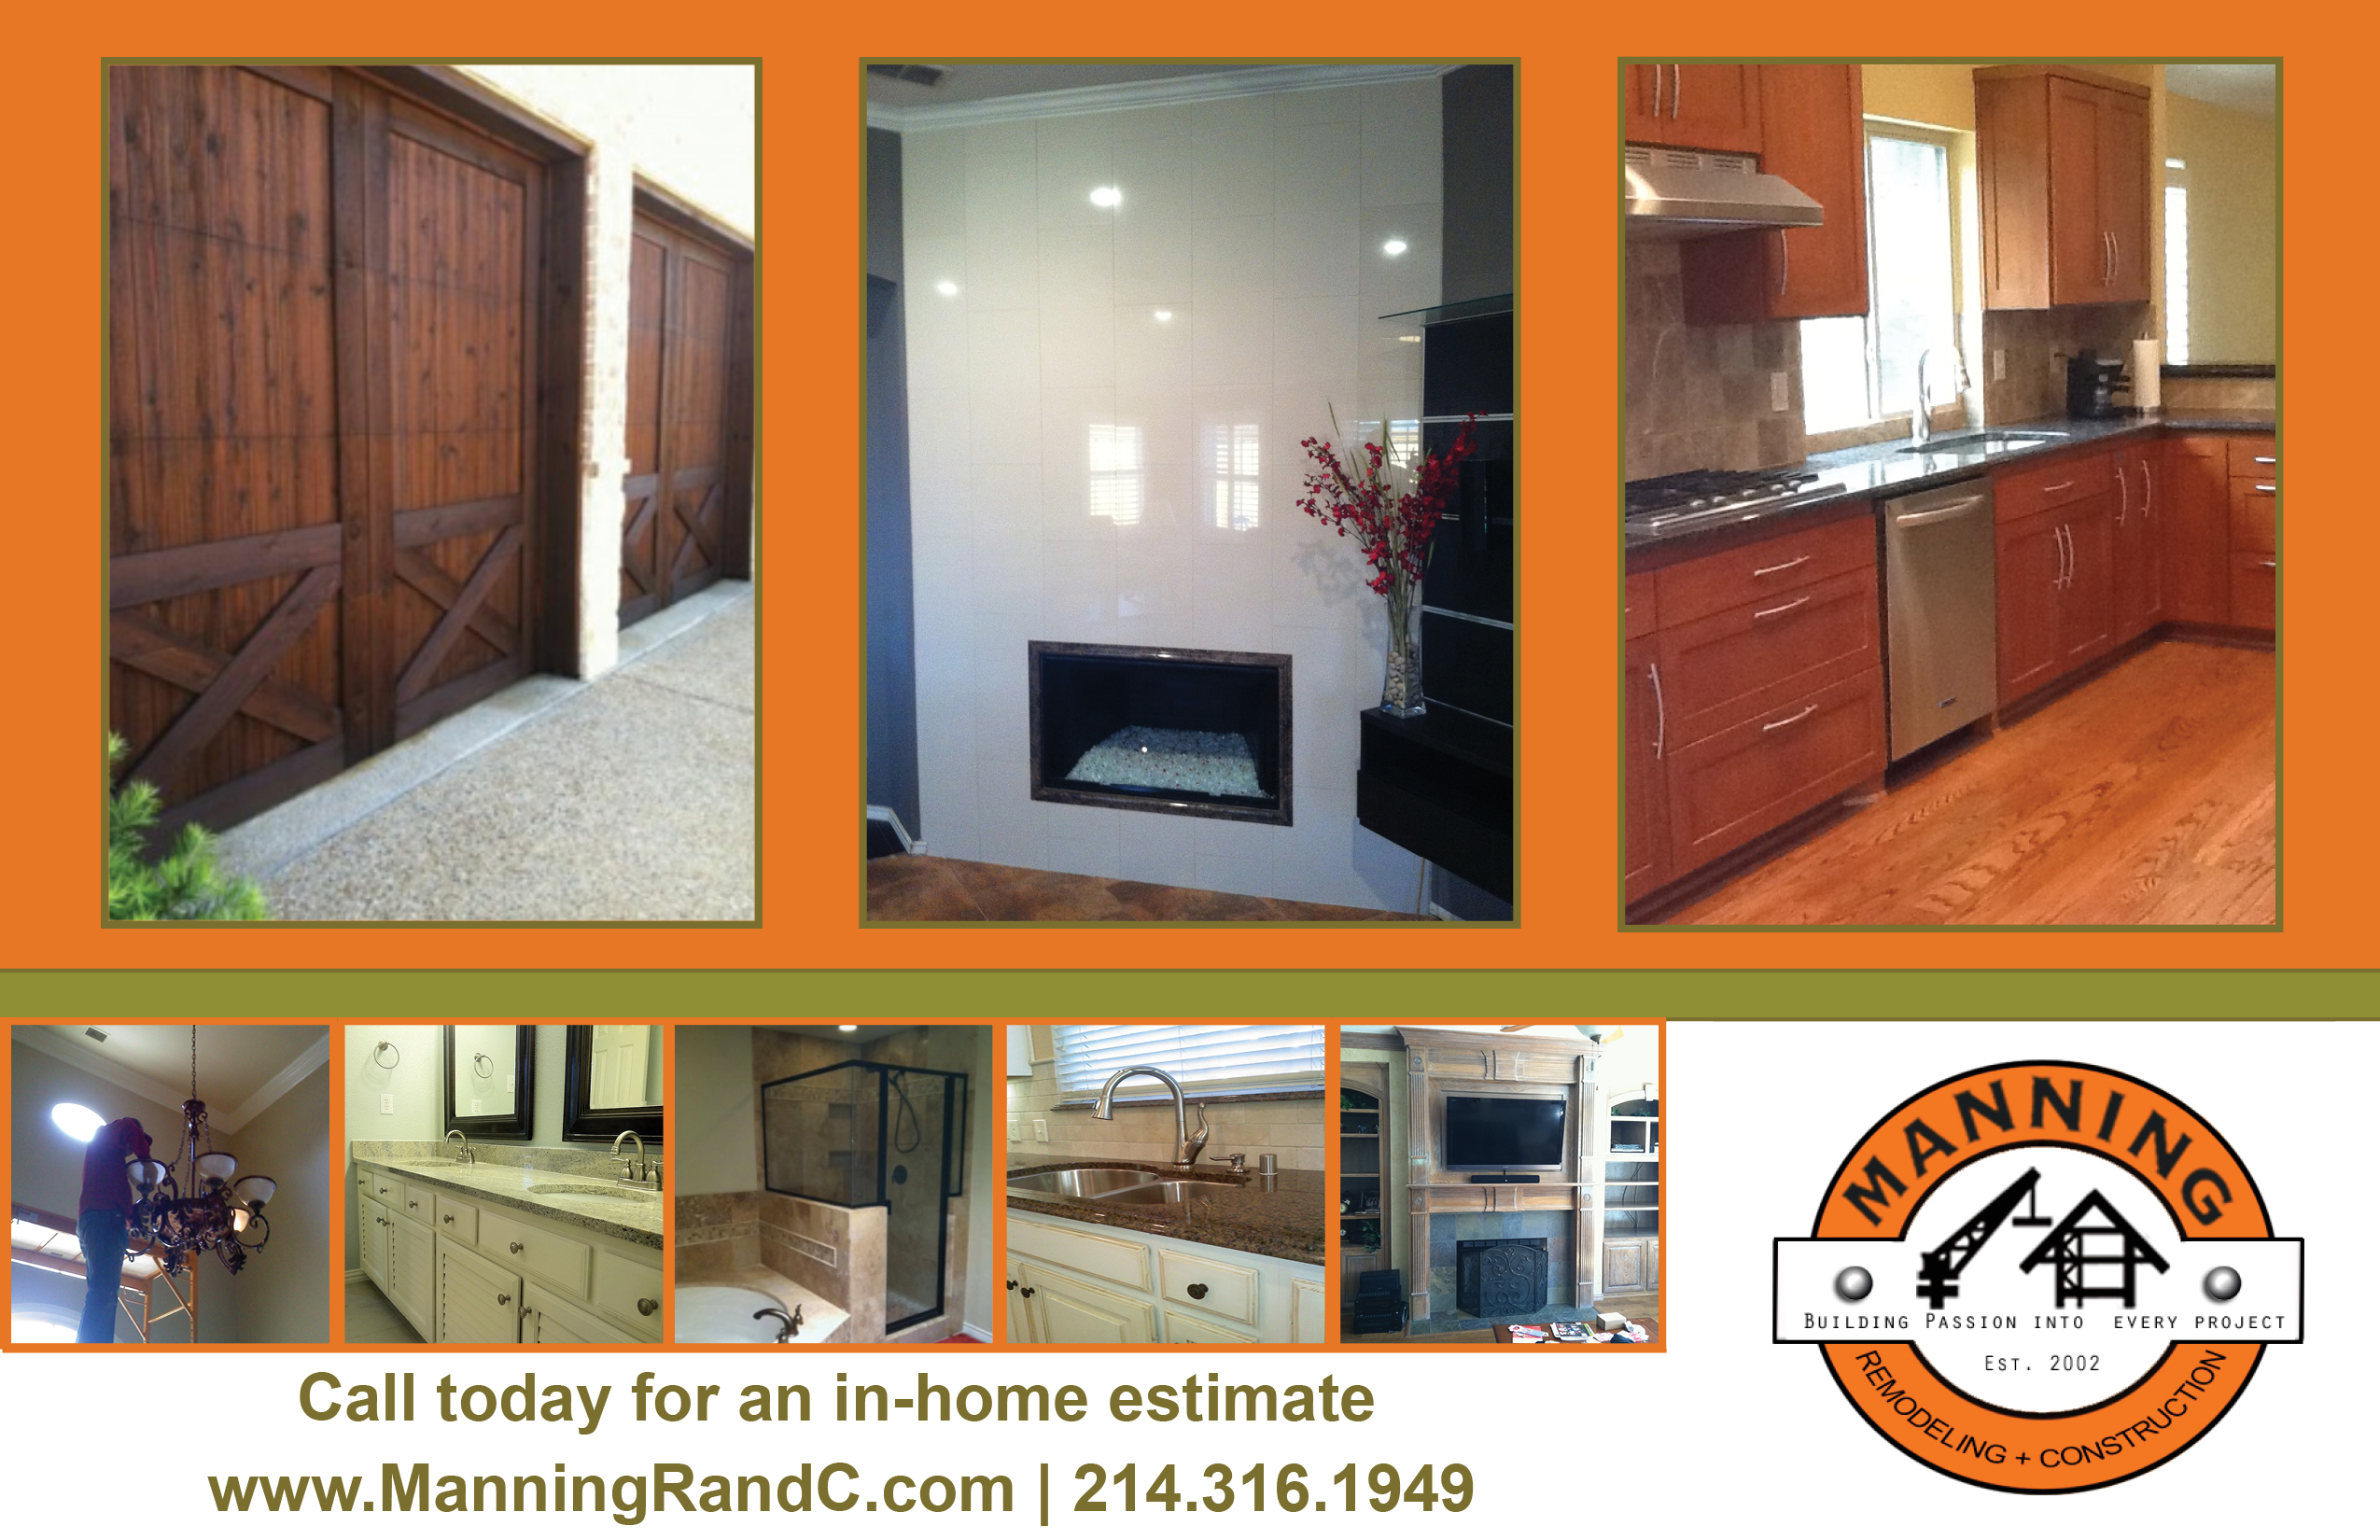 Manning Remodeling and Construction Flyer - Back